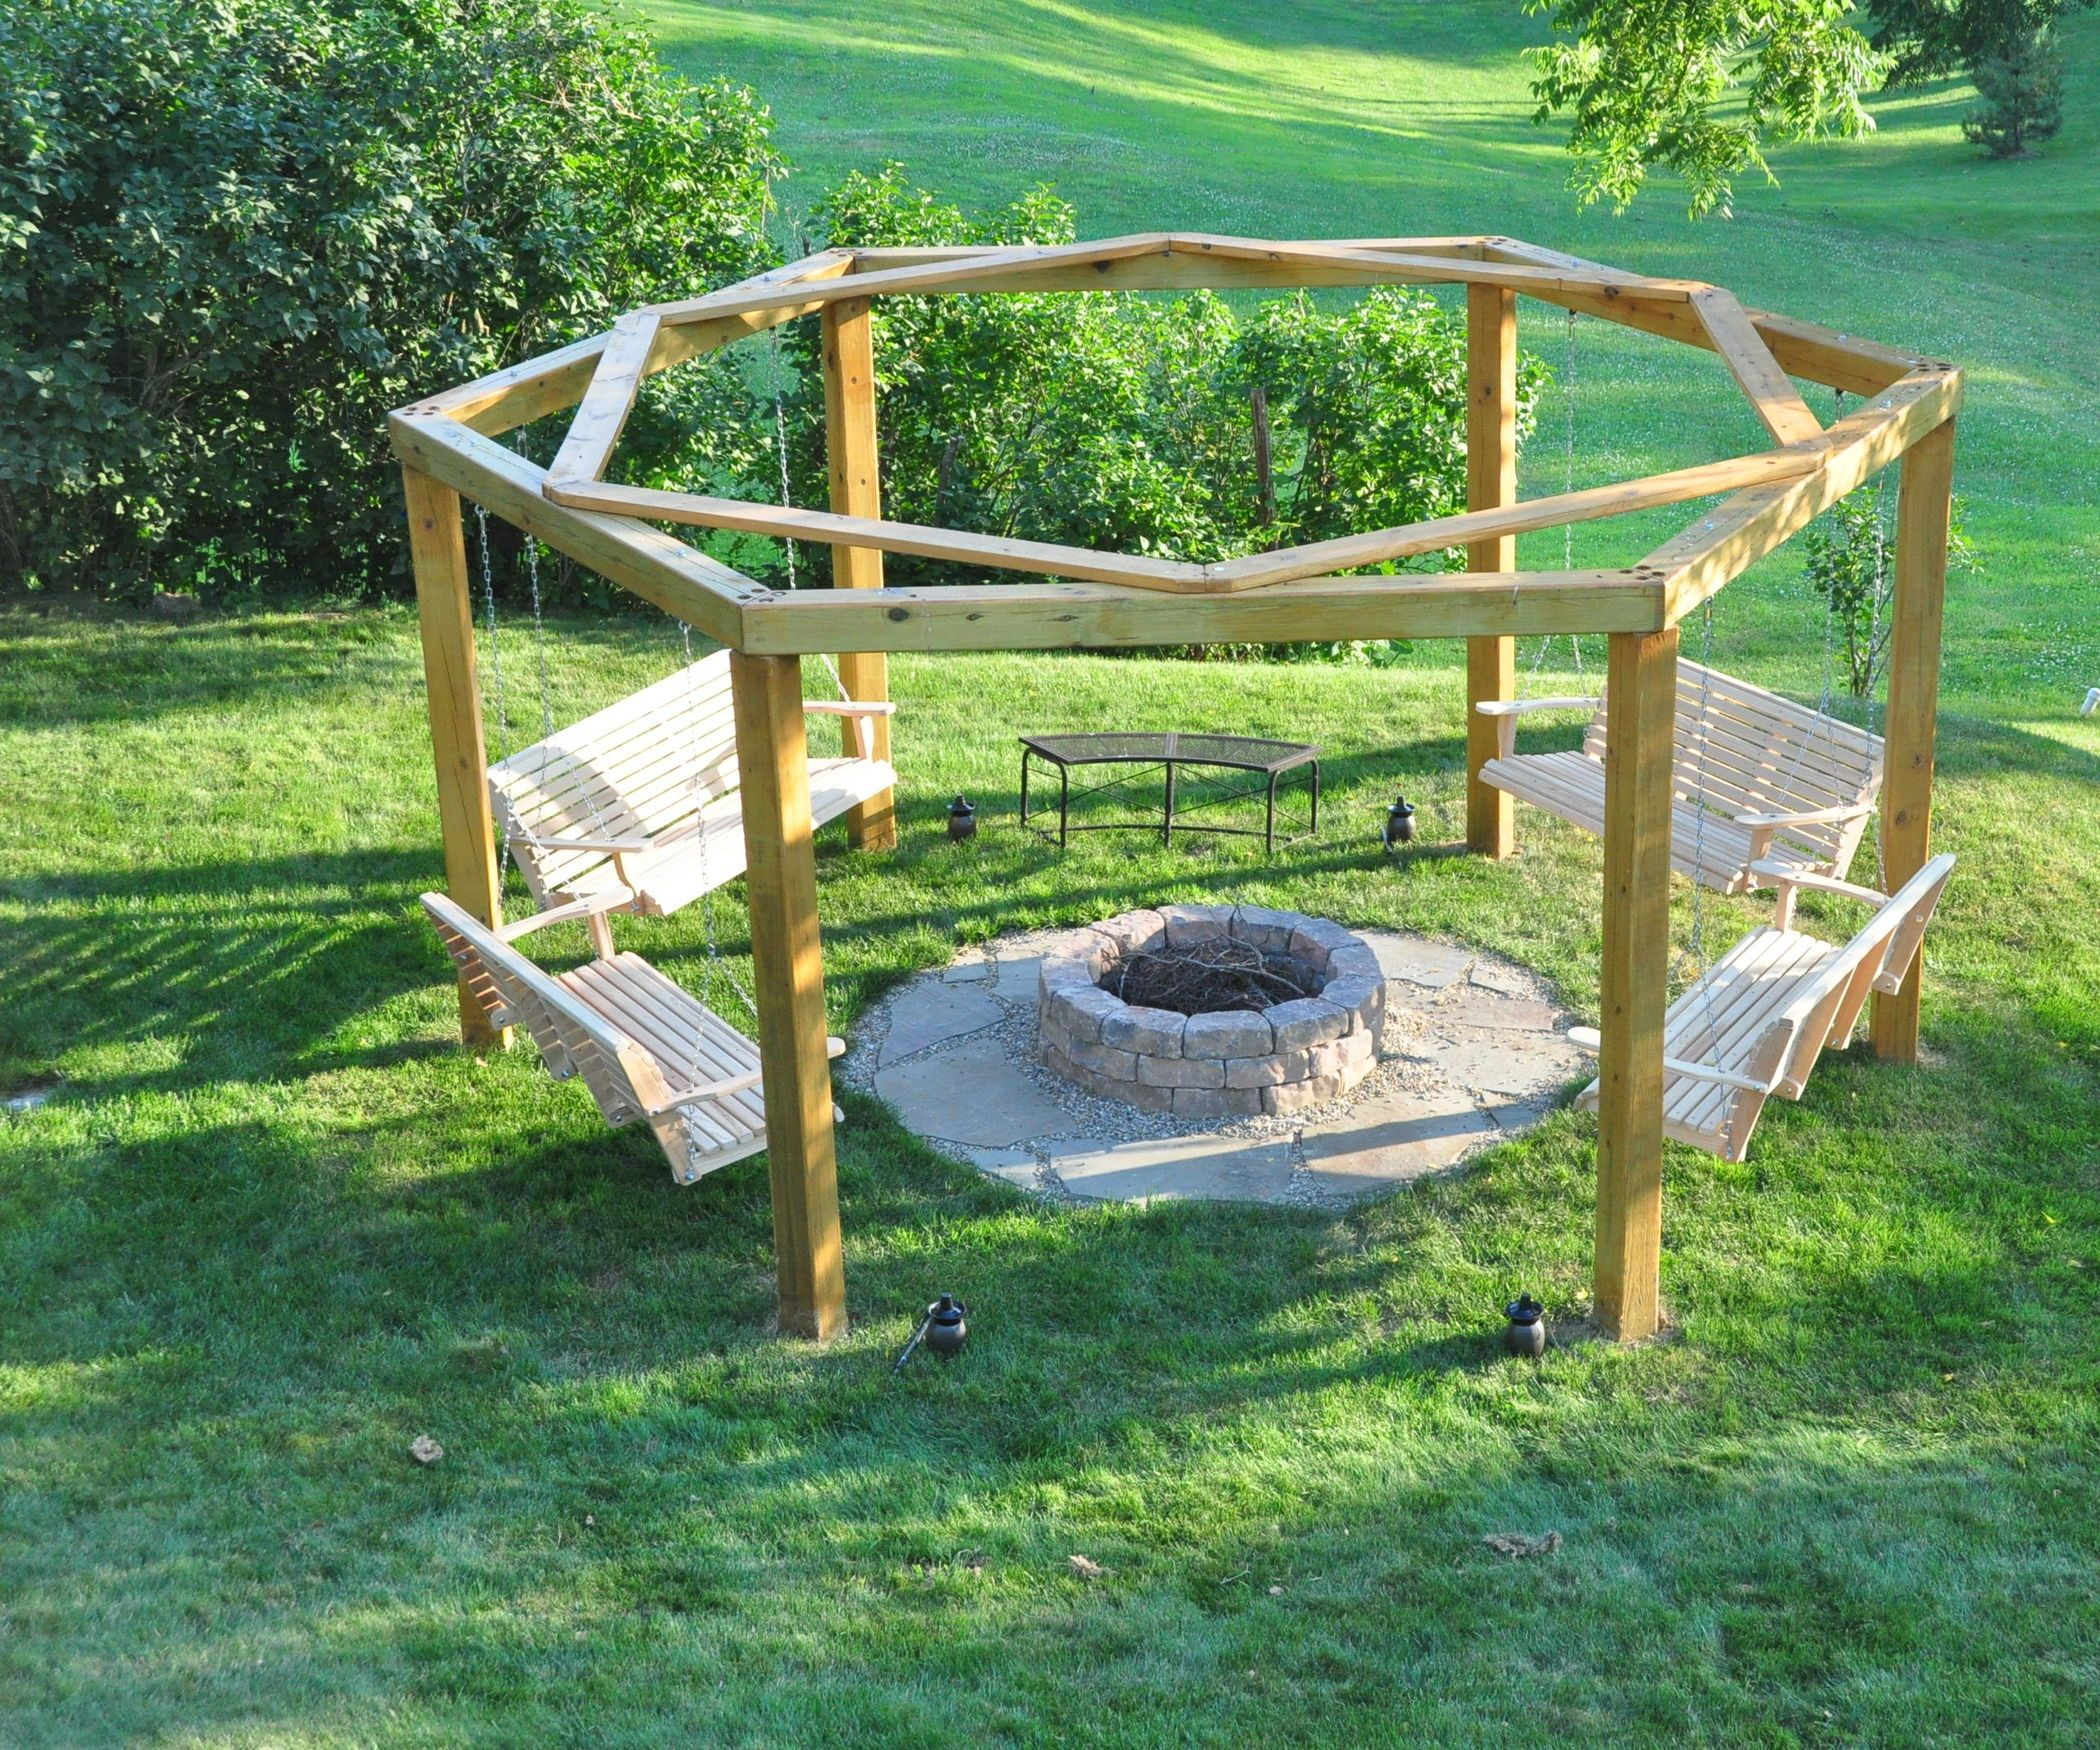 Porch Swing Fire Pit Swings Fire Pits Porch Swings And